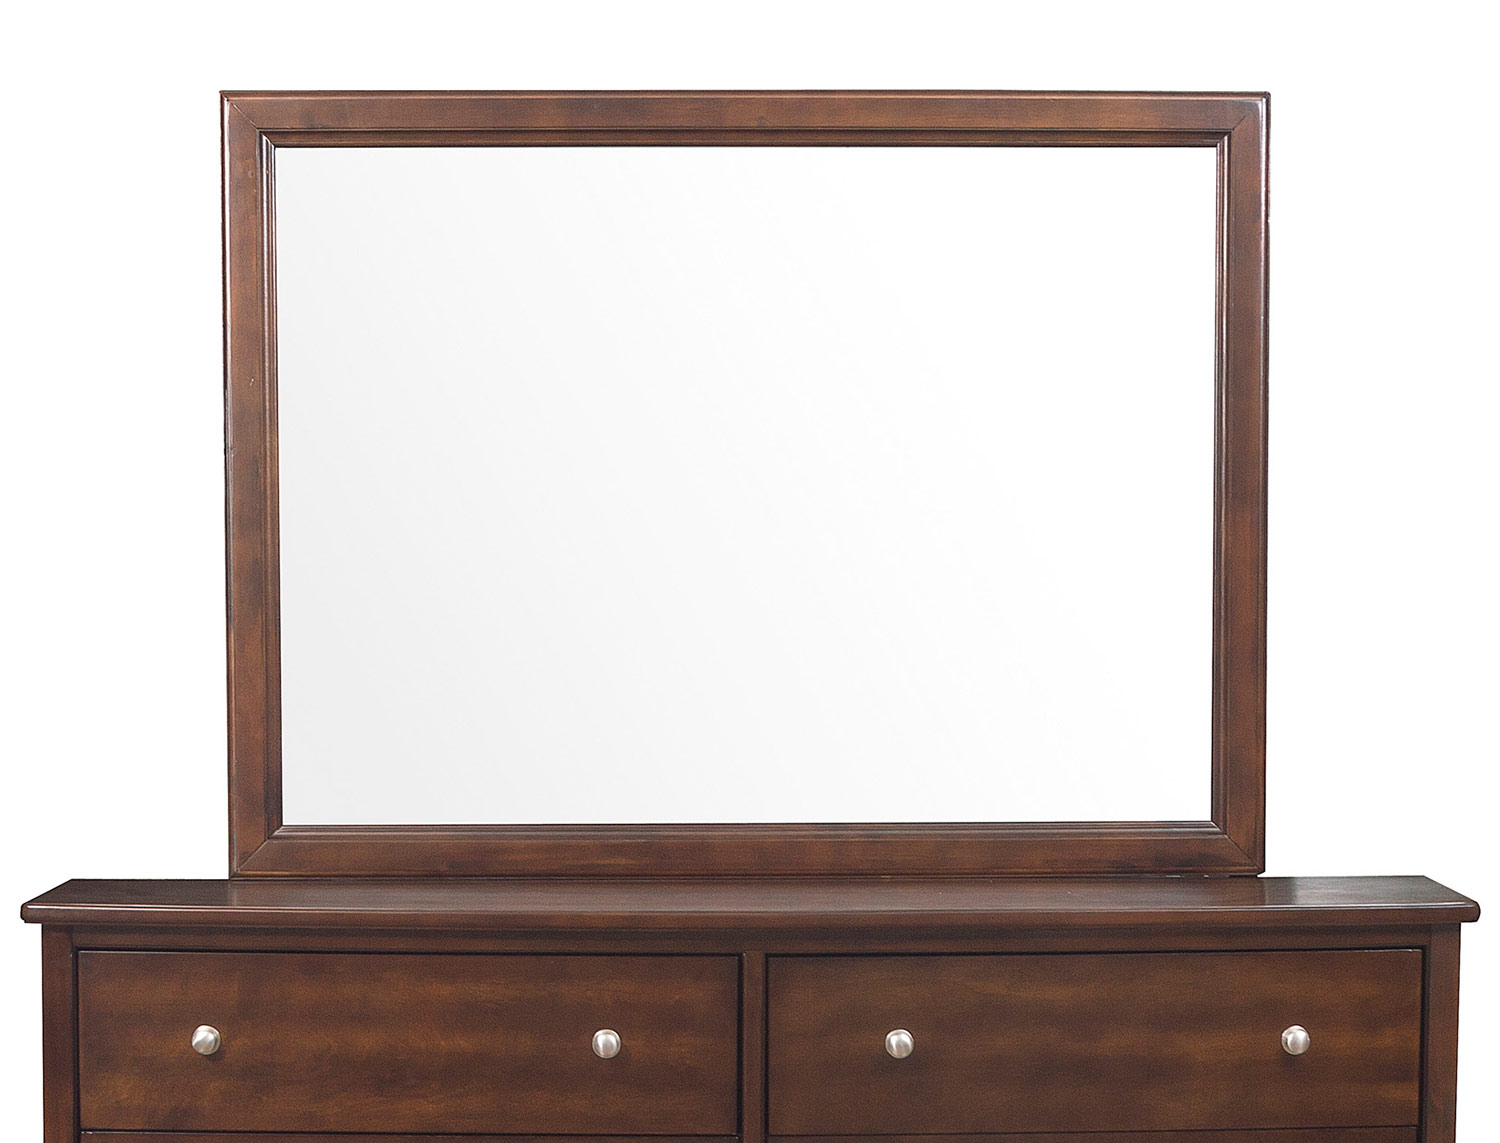 Homelegance Cotterill Mirror - Cherry over Birch Veneer